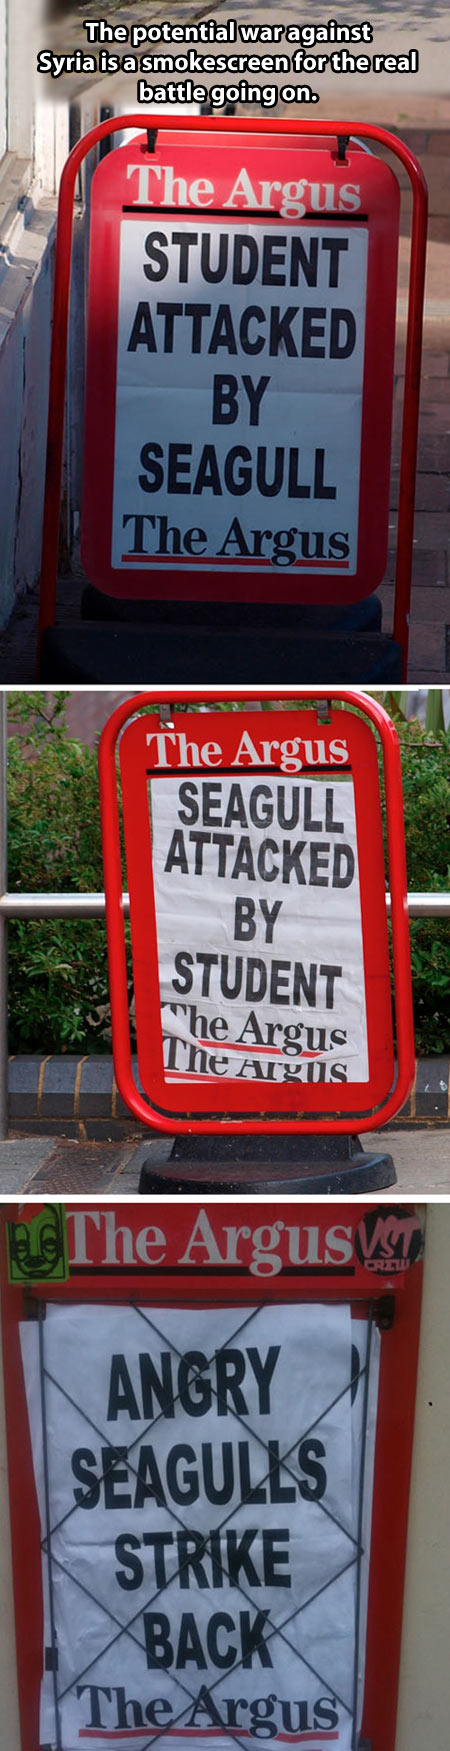 funny-Syria-cover-up-newspaper-seagull